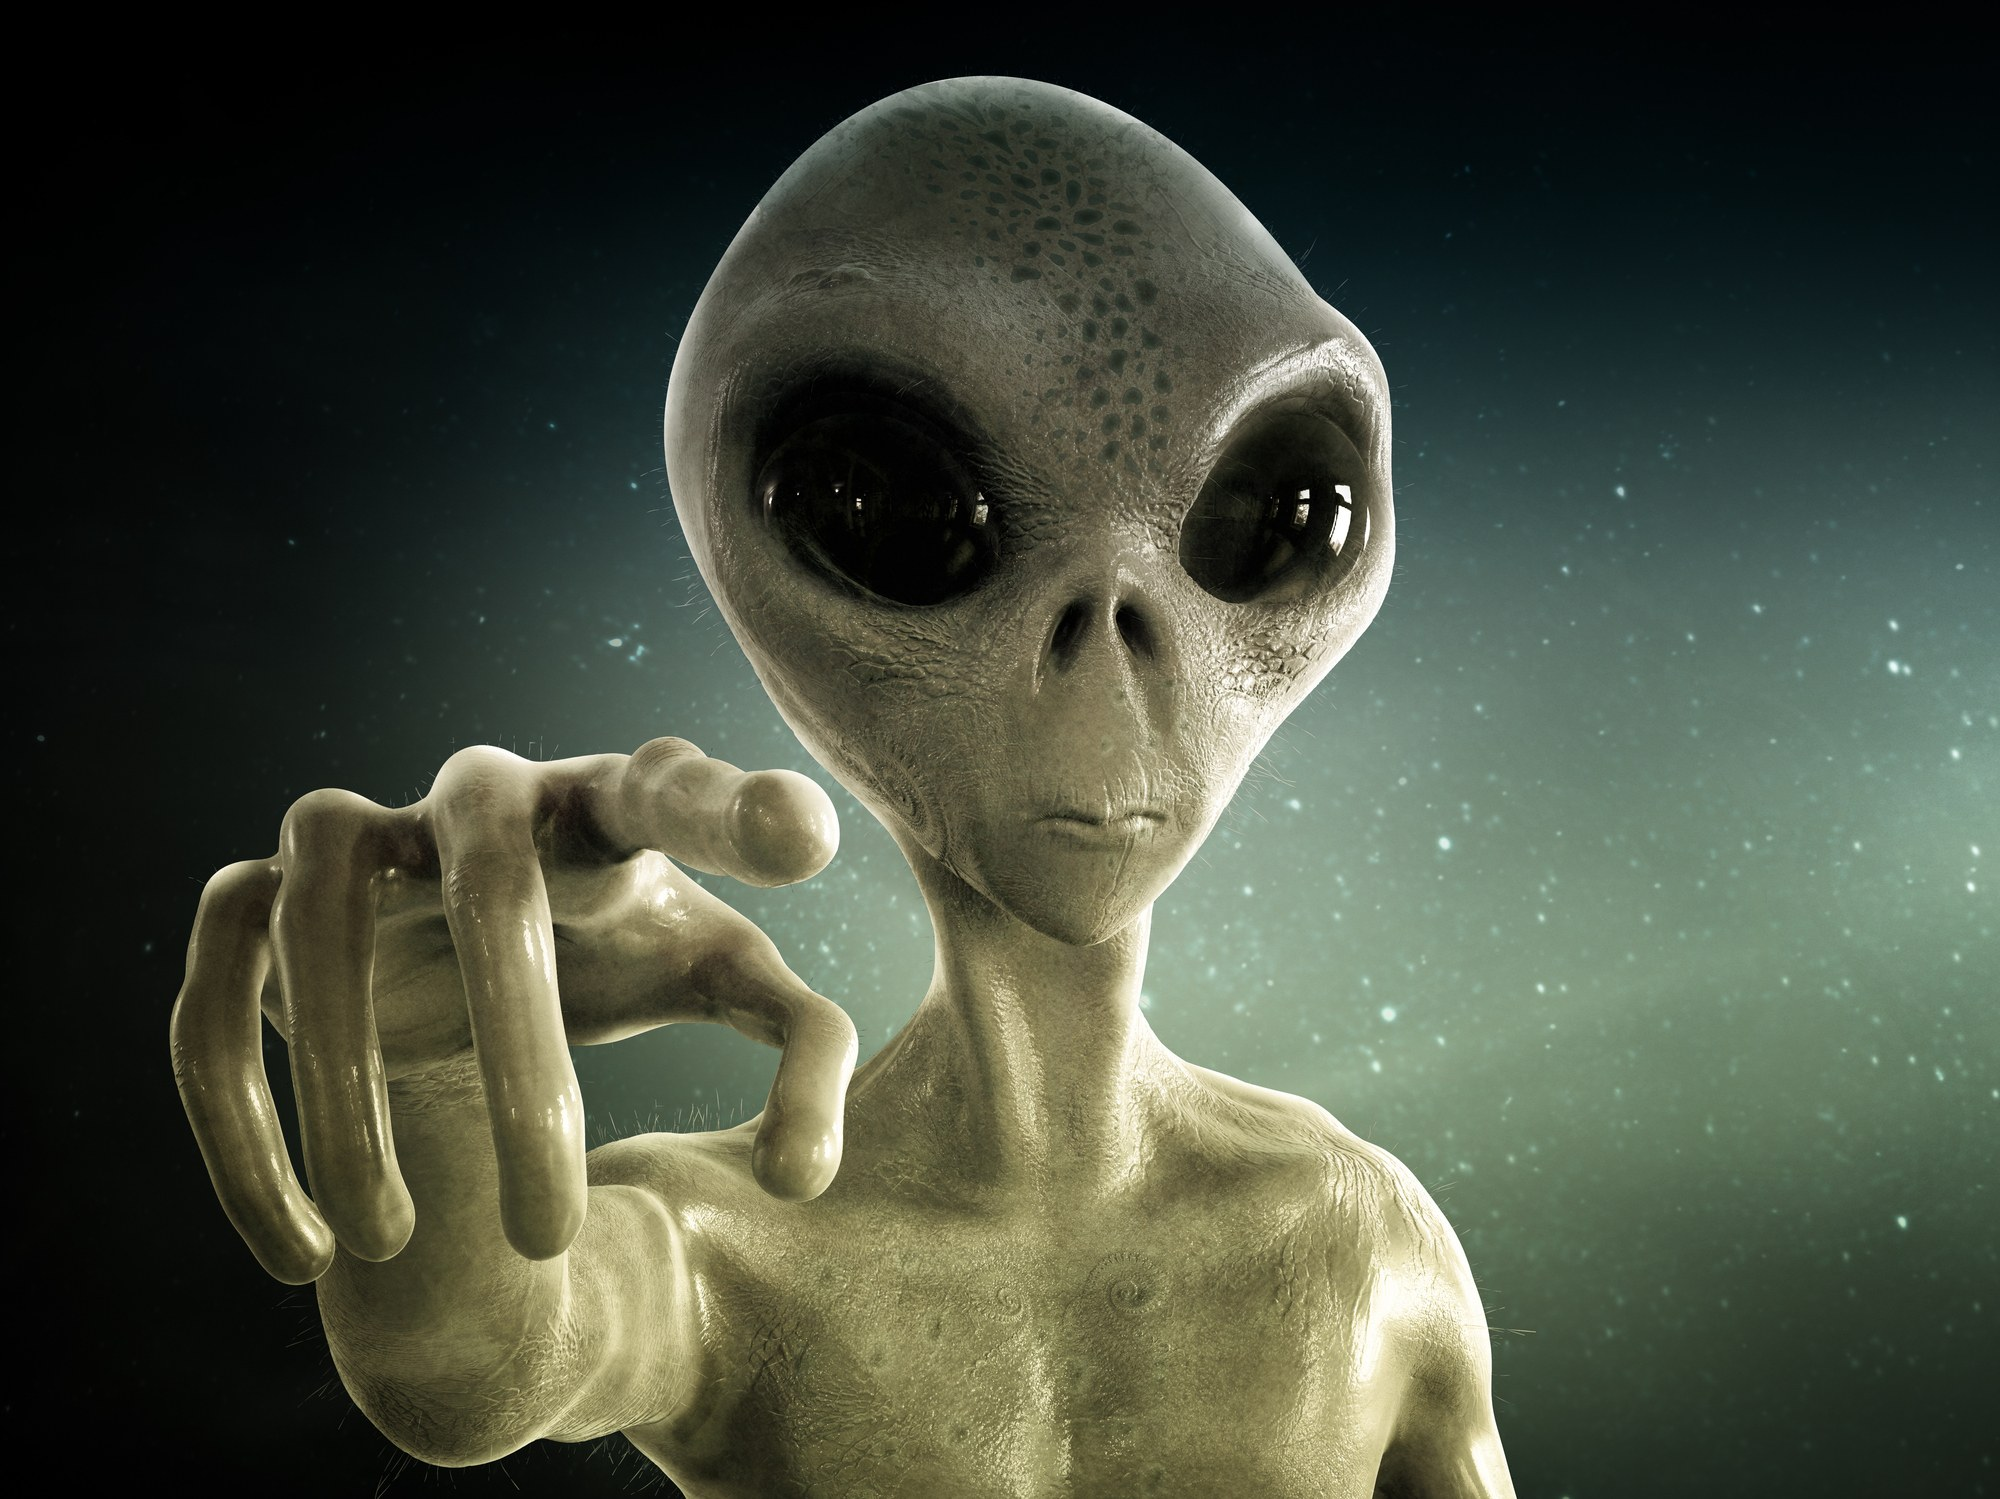 Do aliens really exist?